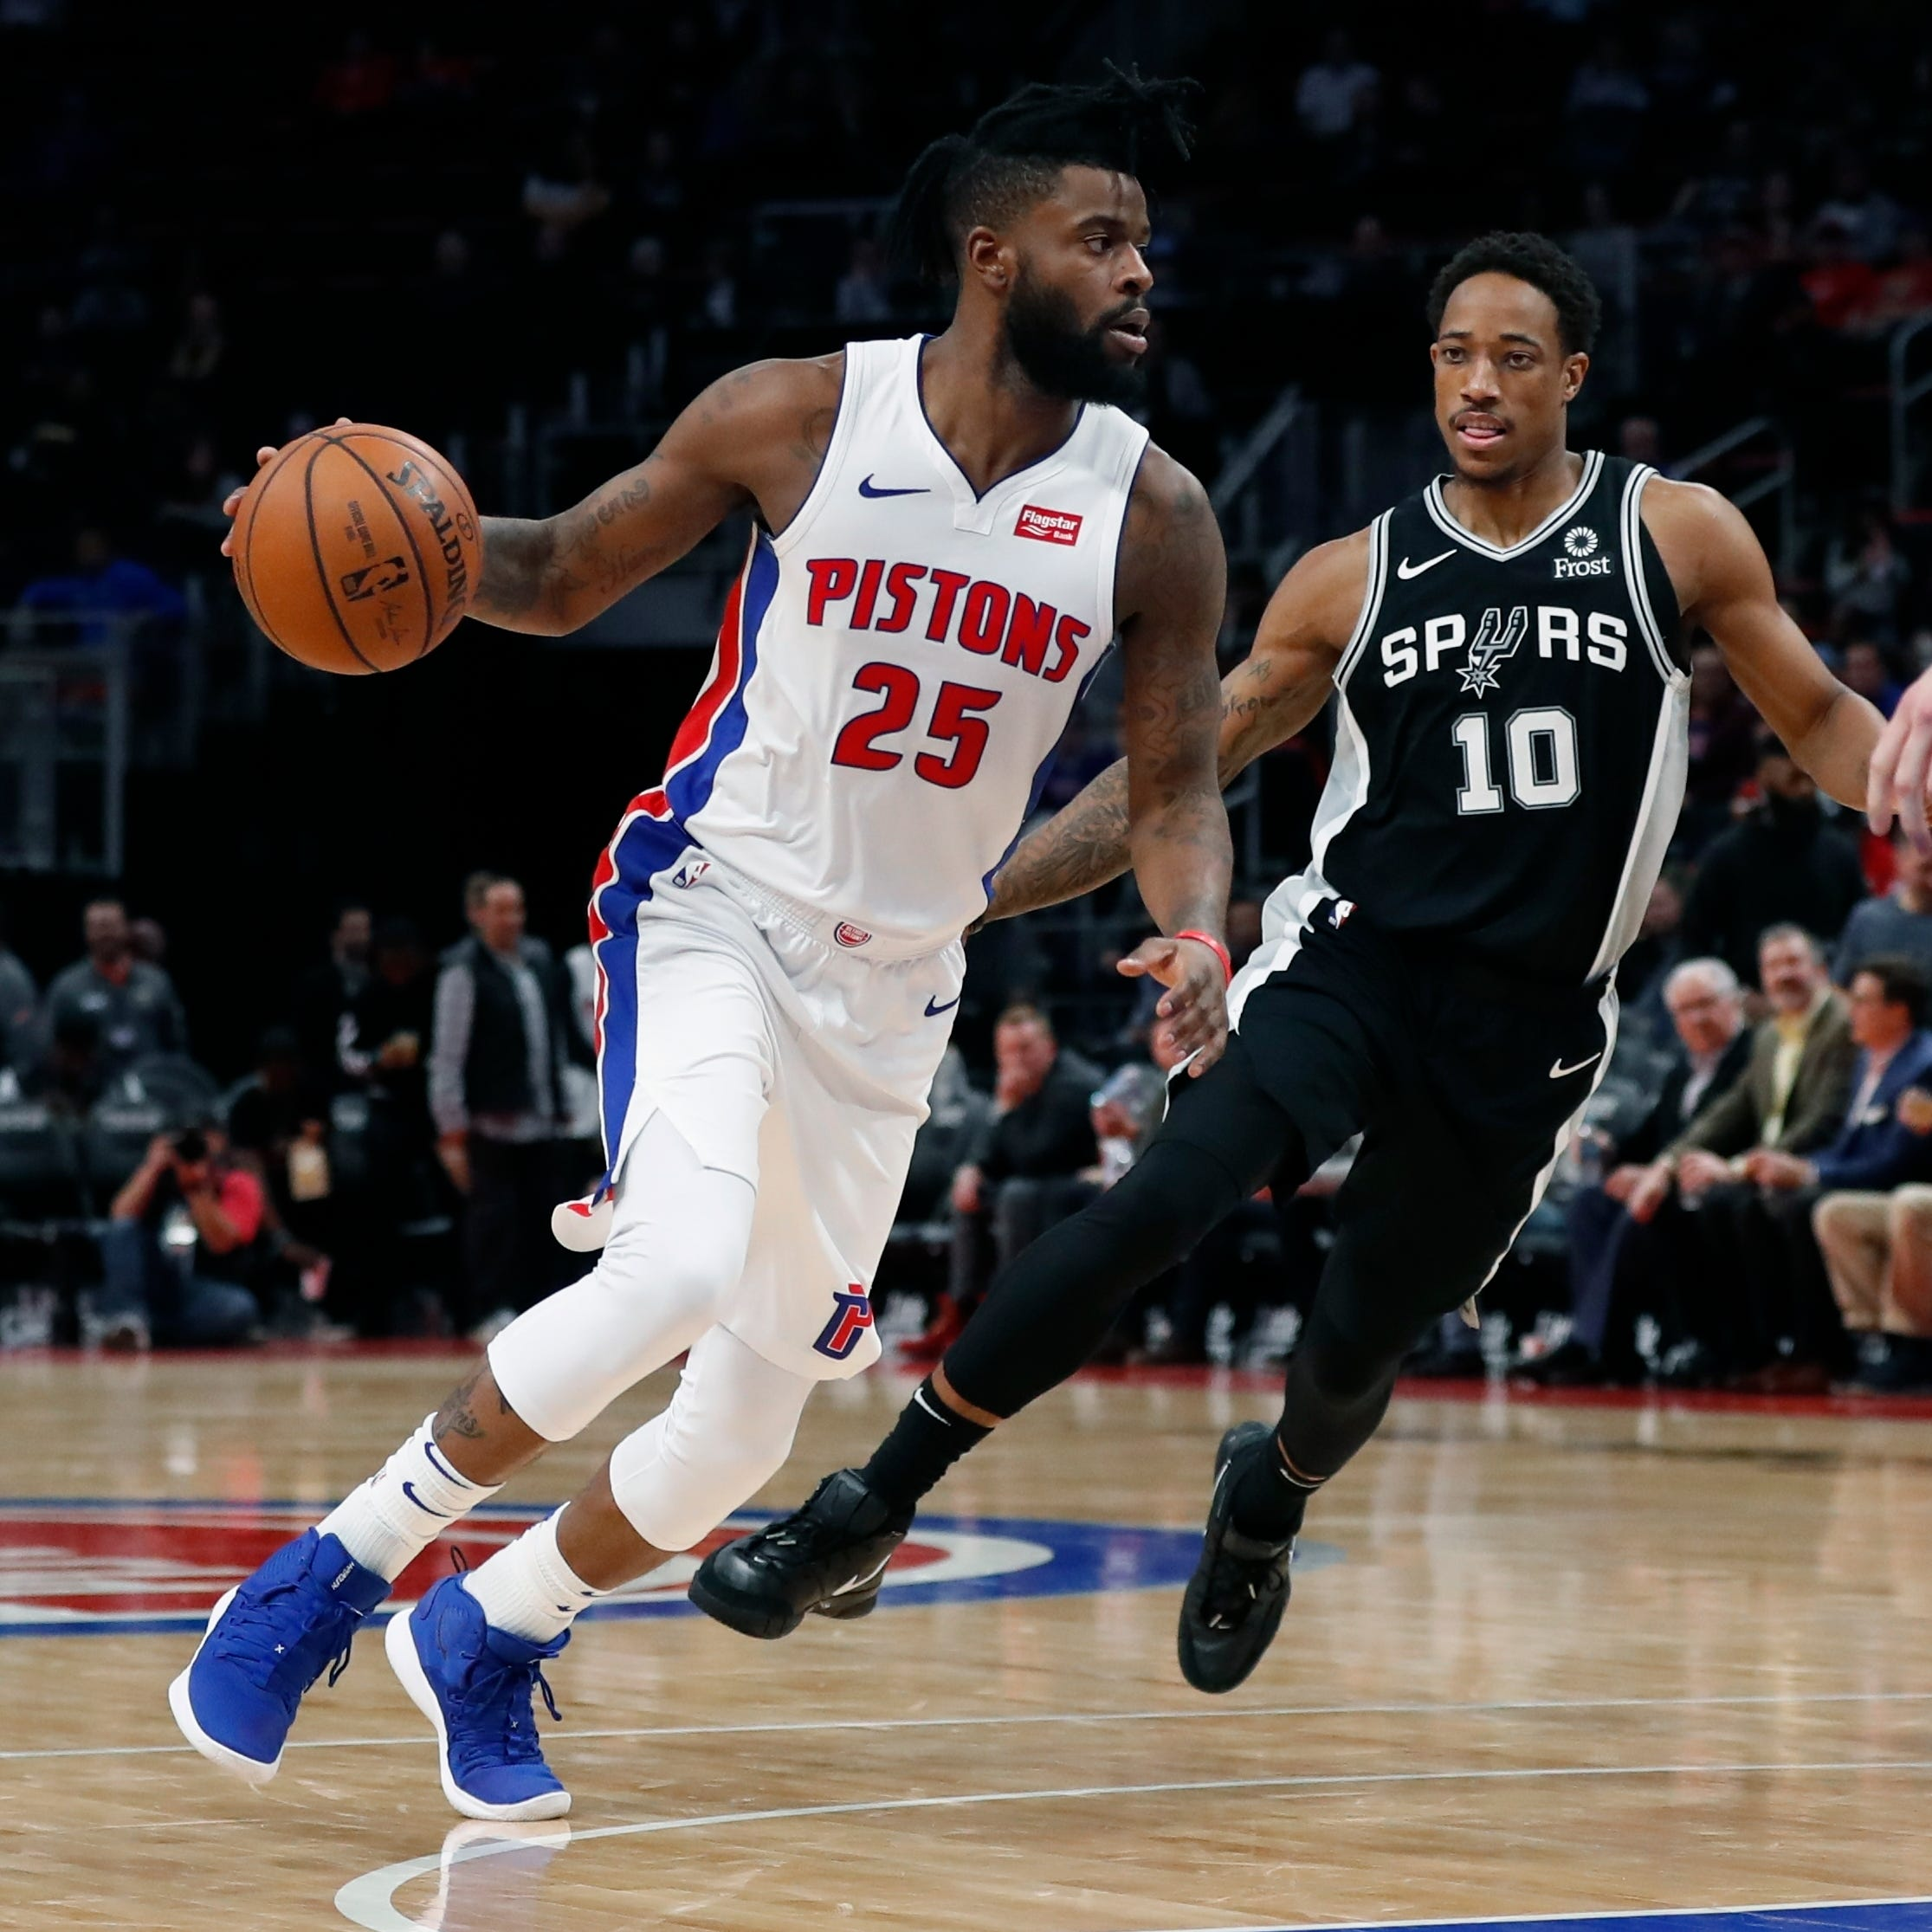 The Monday Drive: Pistons must settle on course of action as rumors emerge